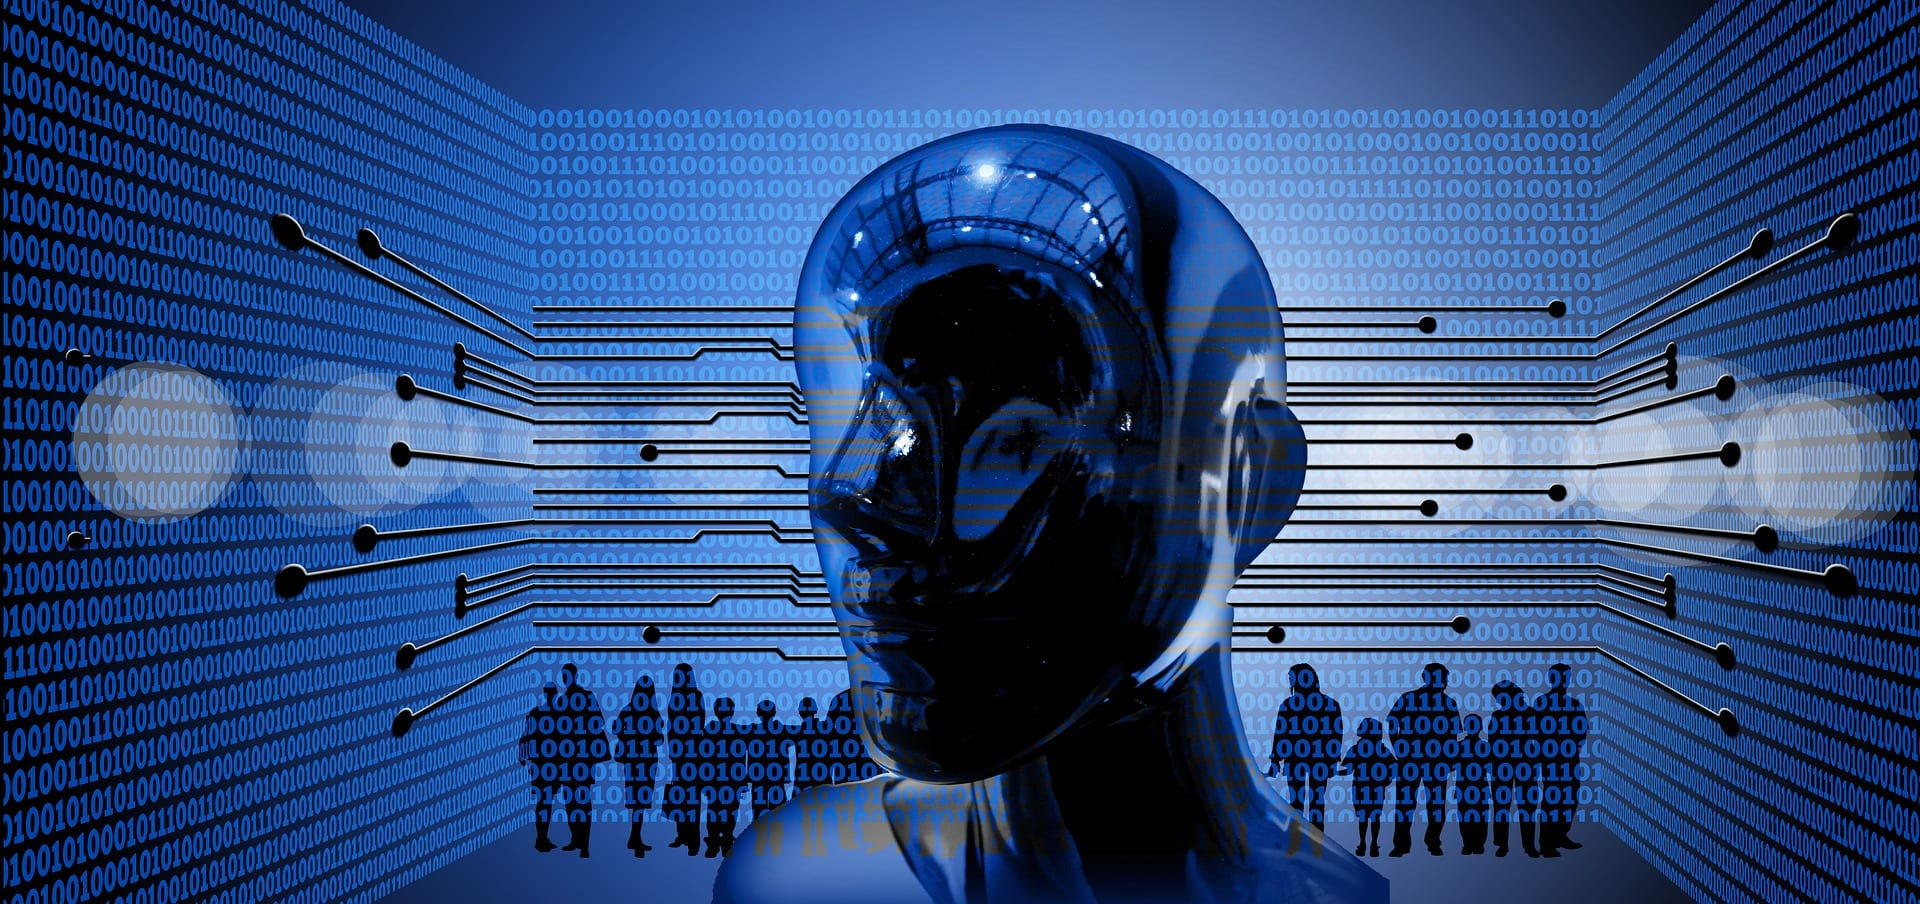 Metallic humanoid head surrounded by binary code with human silhouettes in background; image by geralt, via Pixabay.com.